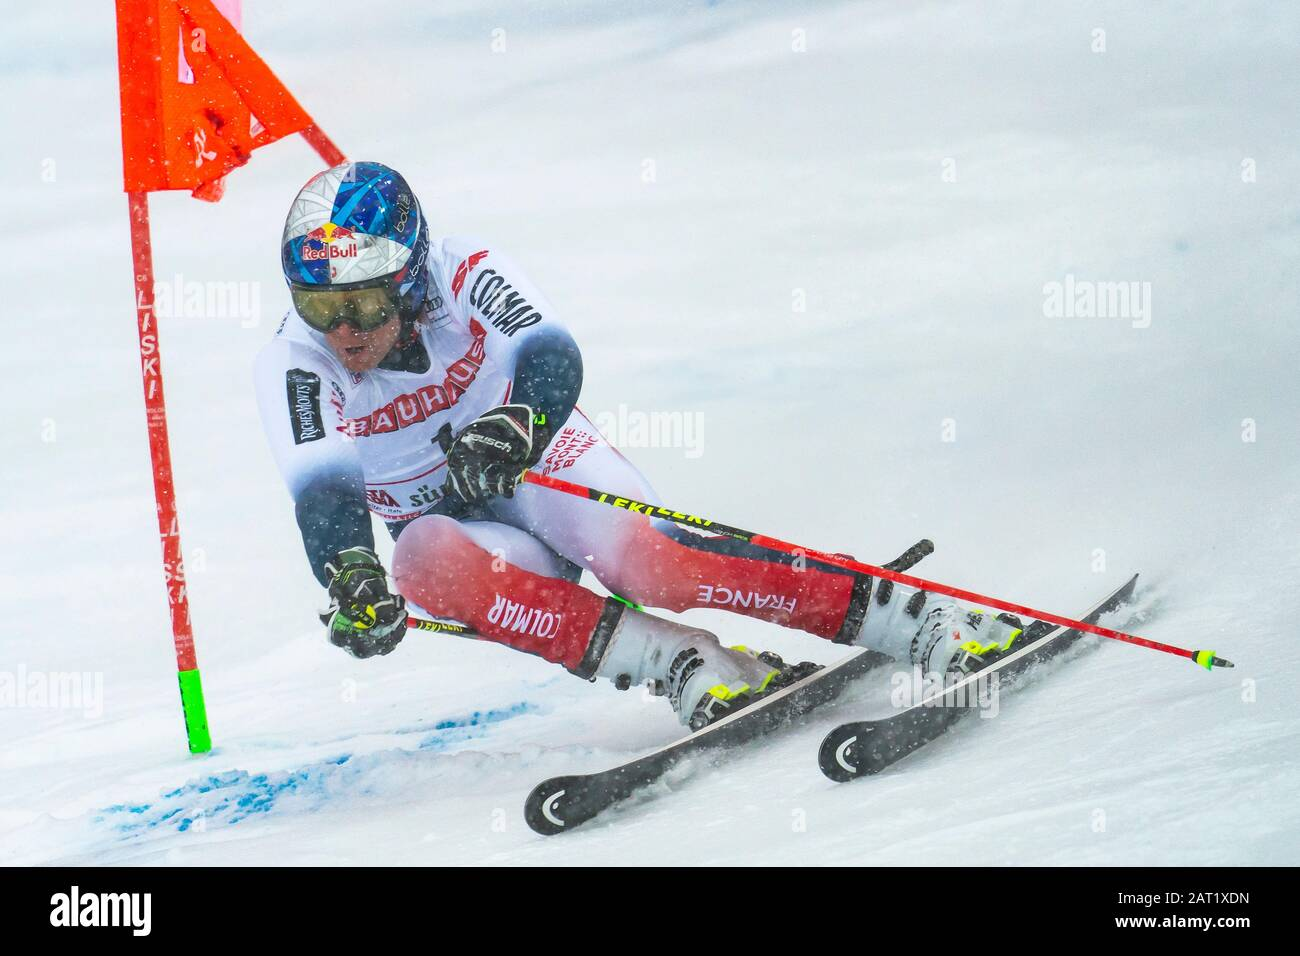 Alta Badia, Italy 22 December 2019.  PINTURAULT Alexis (Fra) competing in the Audi Fis Alpine Skiing World Cup Men's Giant Slalom on the Gran Risa Cou Stock Photo